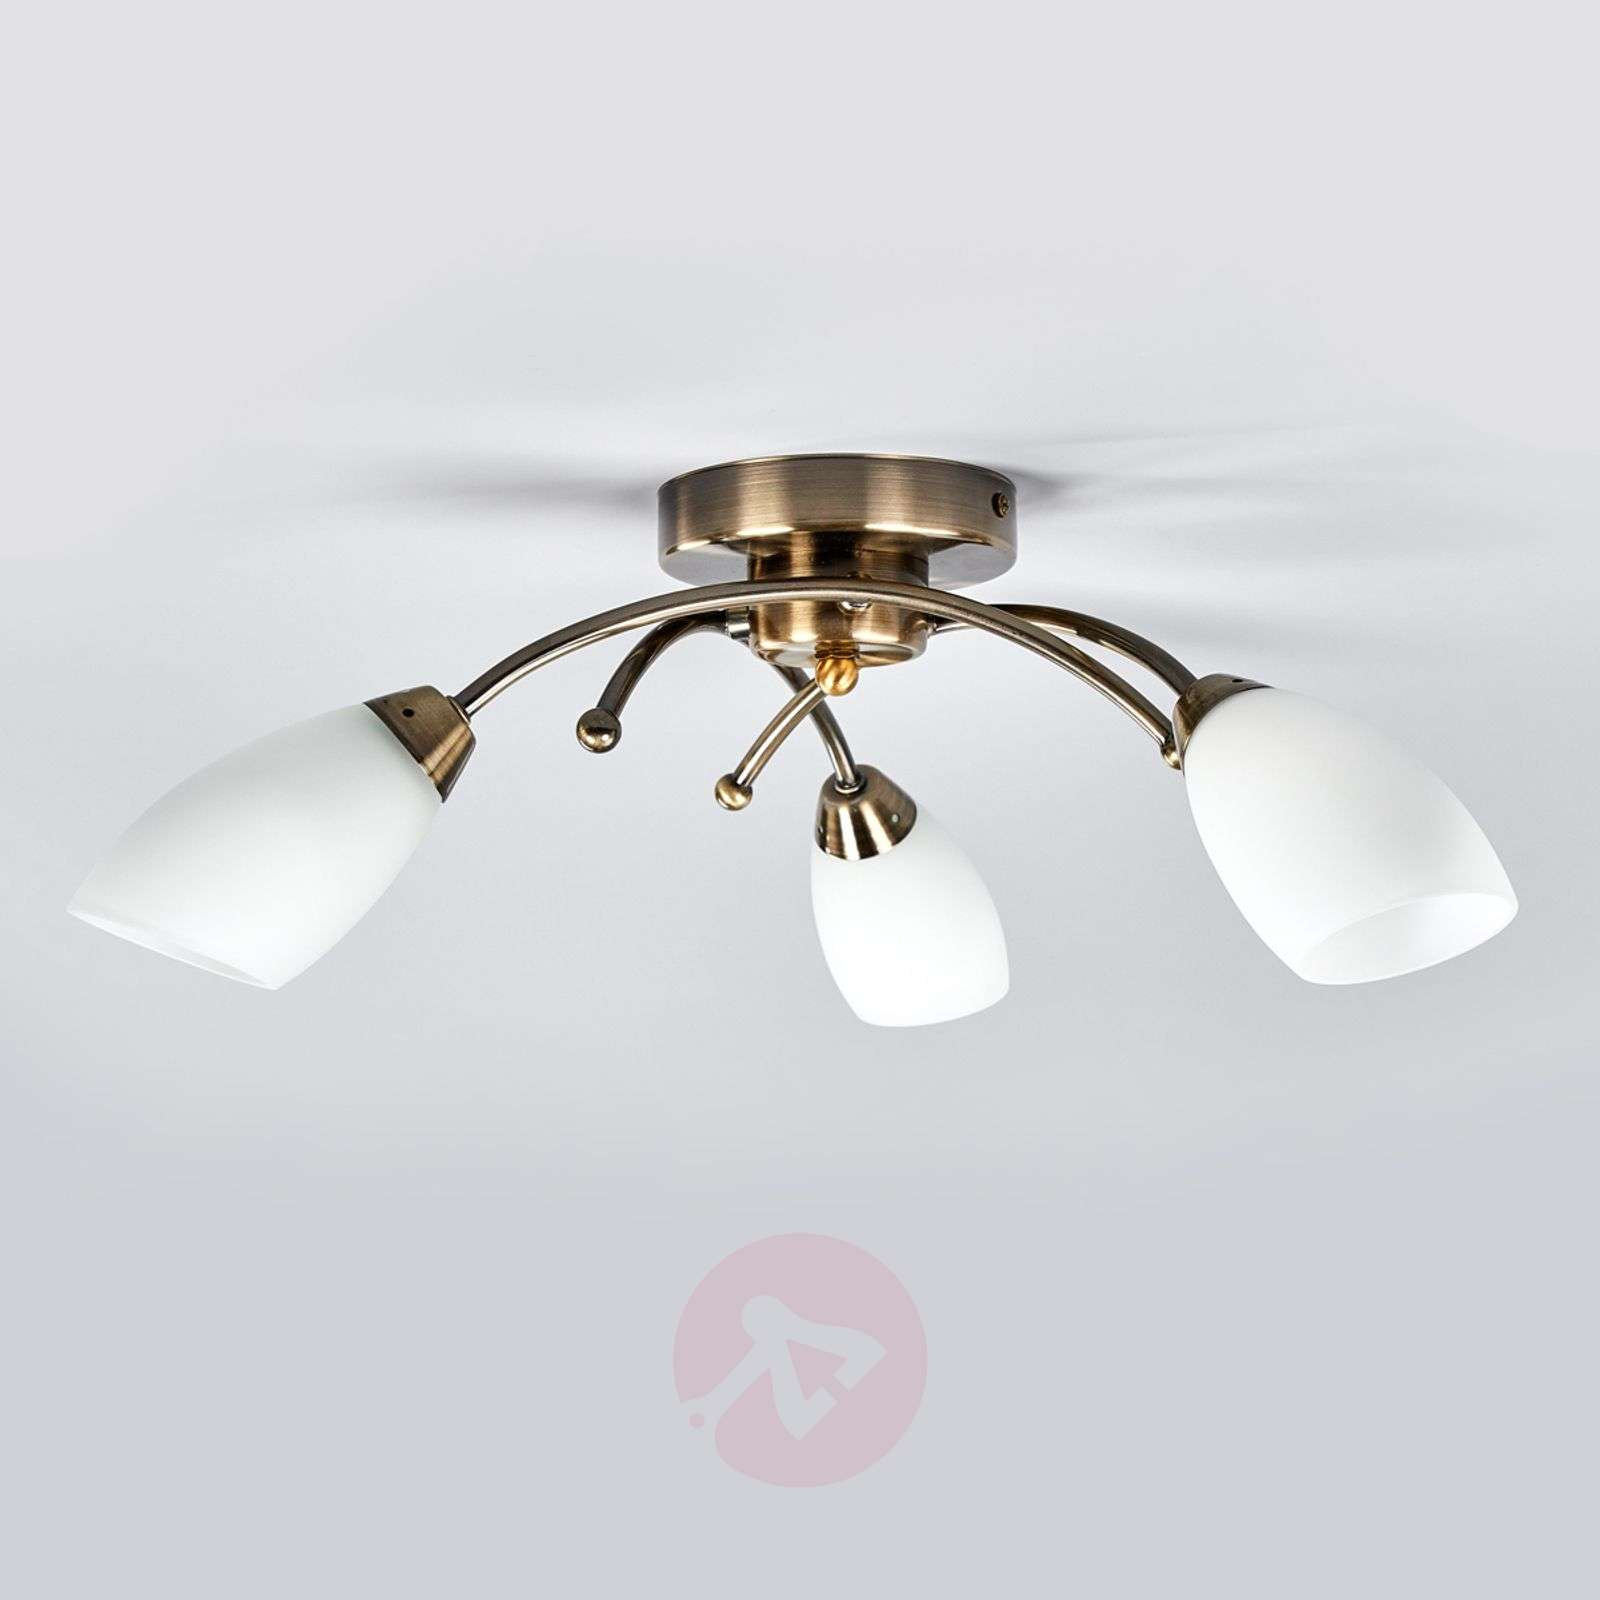 Opera 3-bulb ceiling light, antique brass-8570068-03